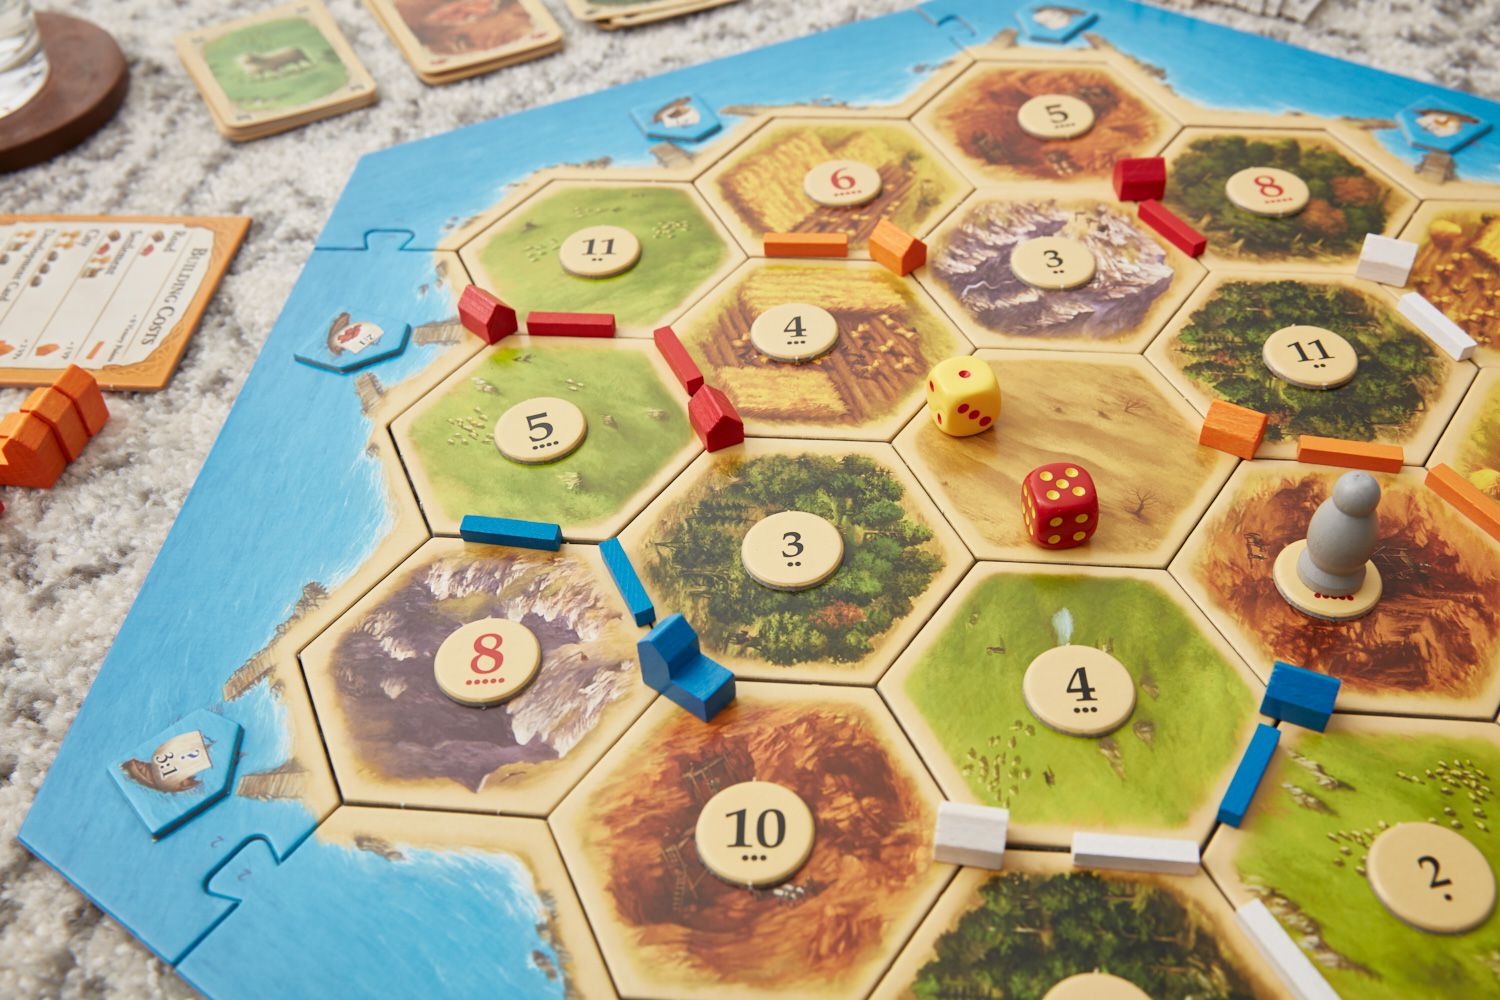 settlers-of-catan-initial-placement-strategies-412418_hero_3210-604e44cd981841f783ae47c9e46b7082